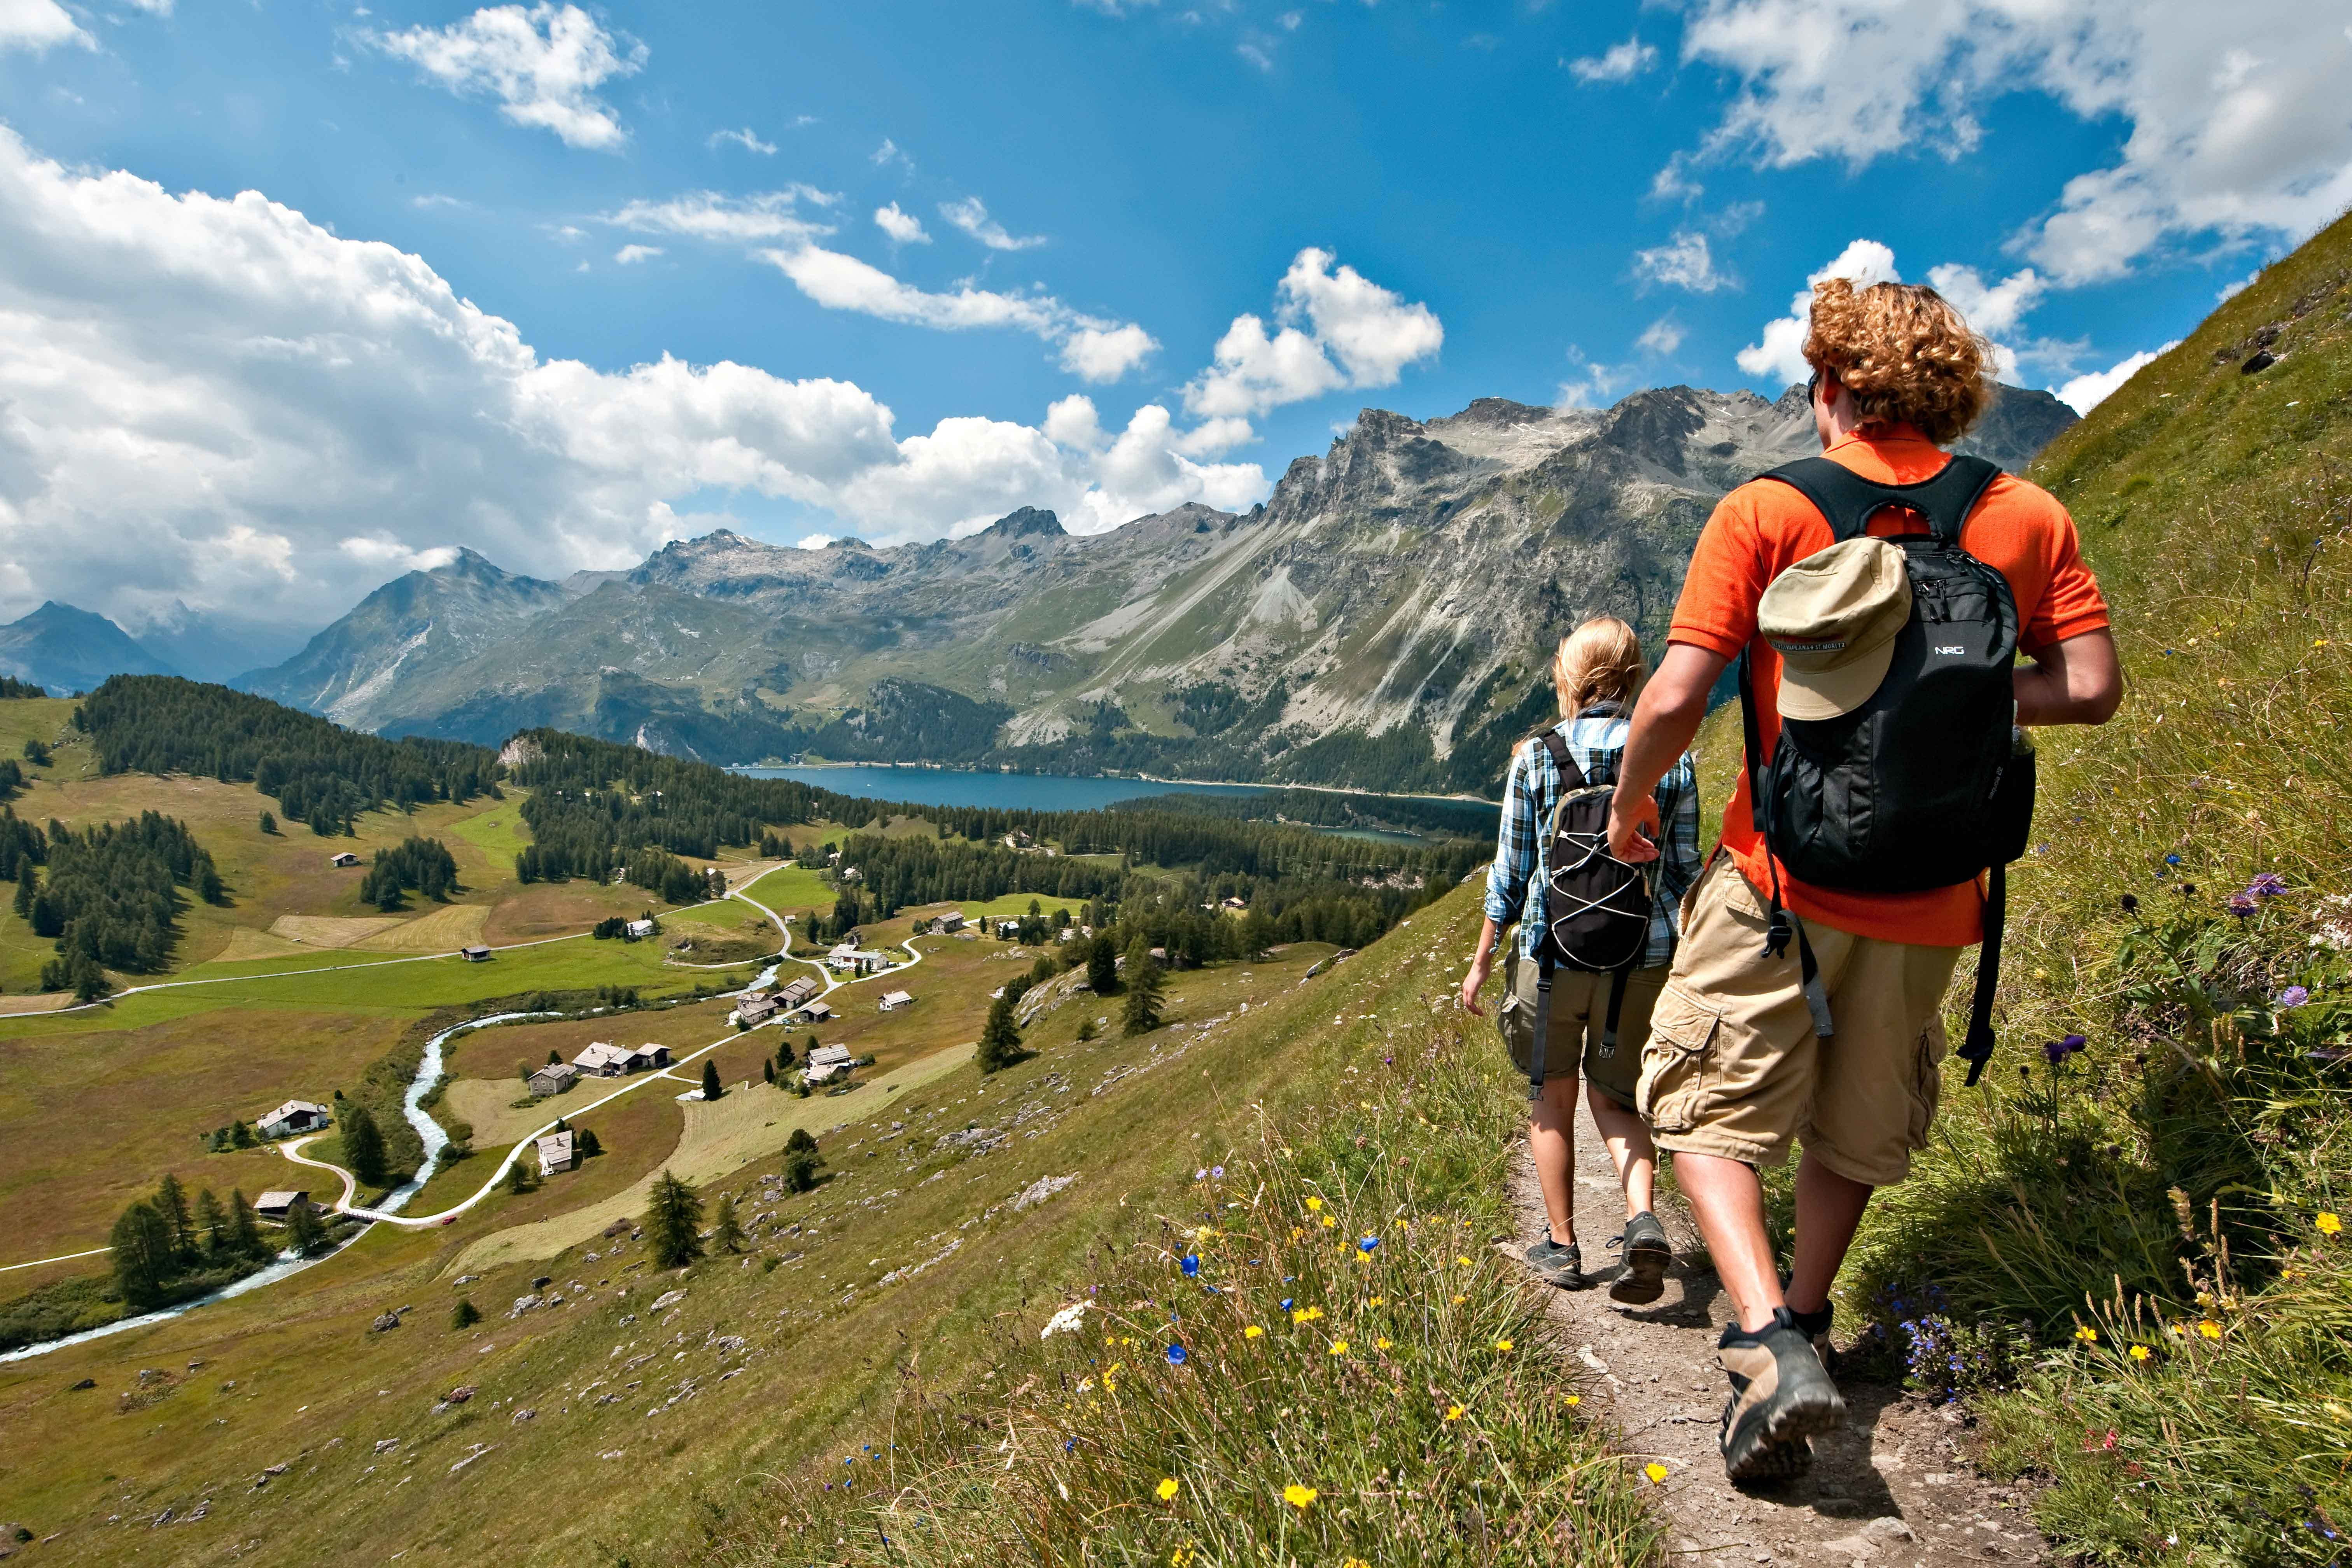 Hiking in one of the side valleys of the Engadin